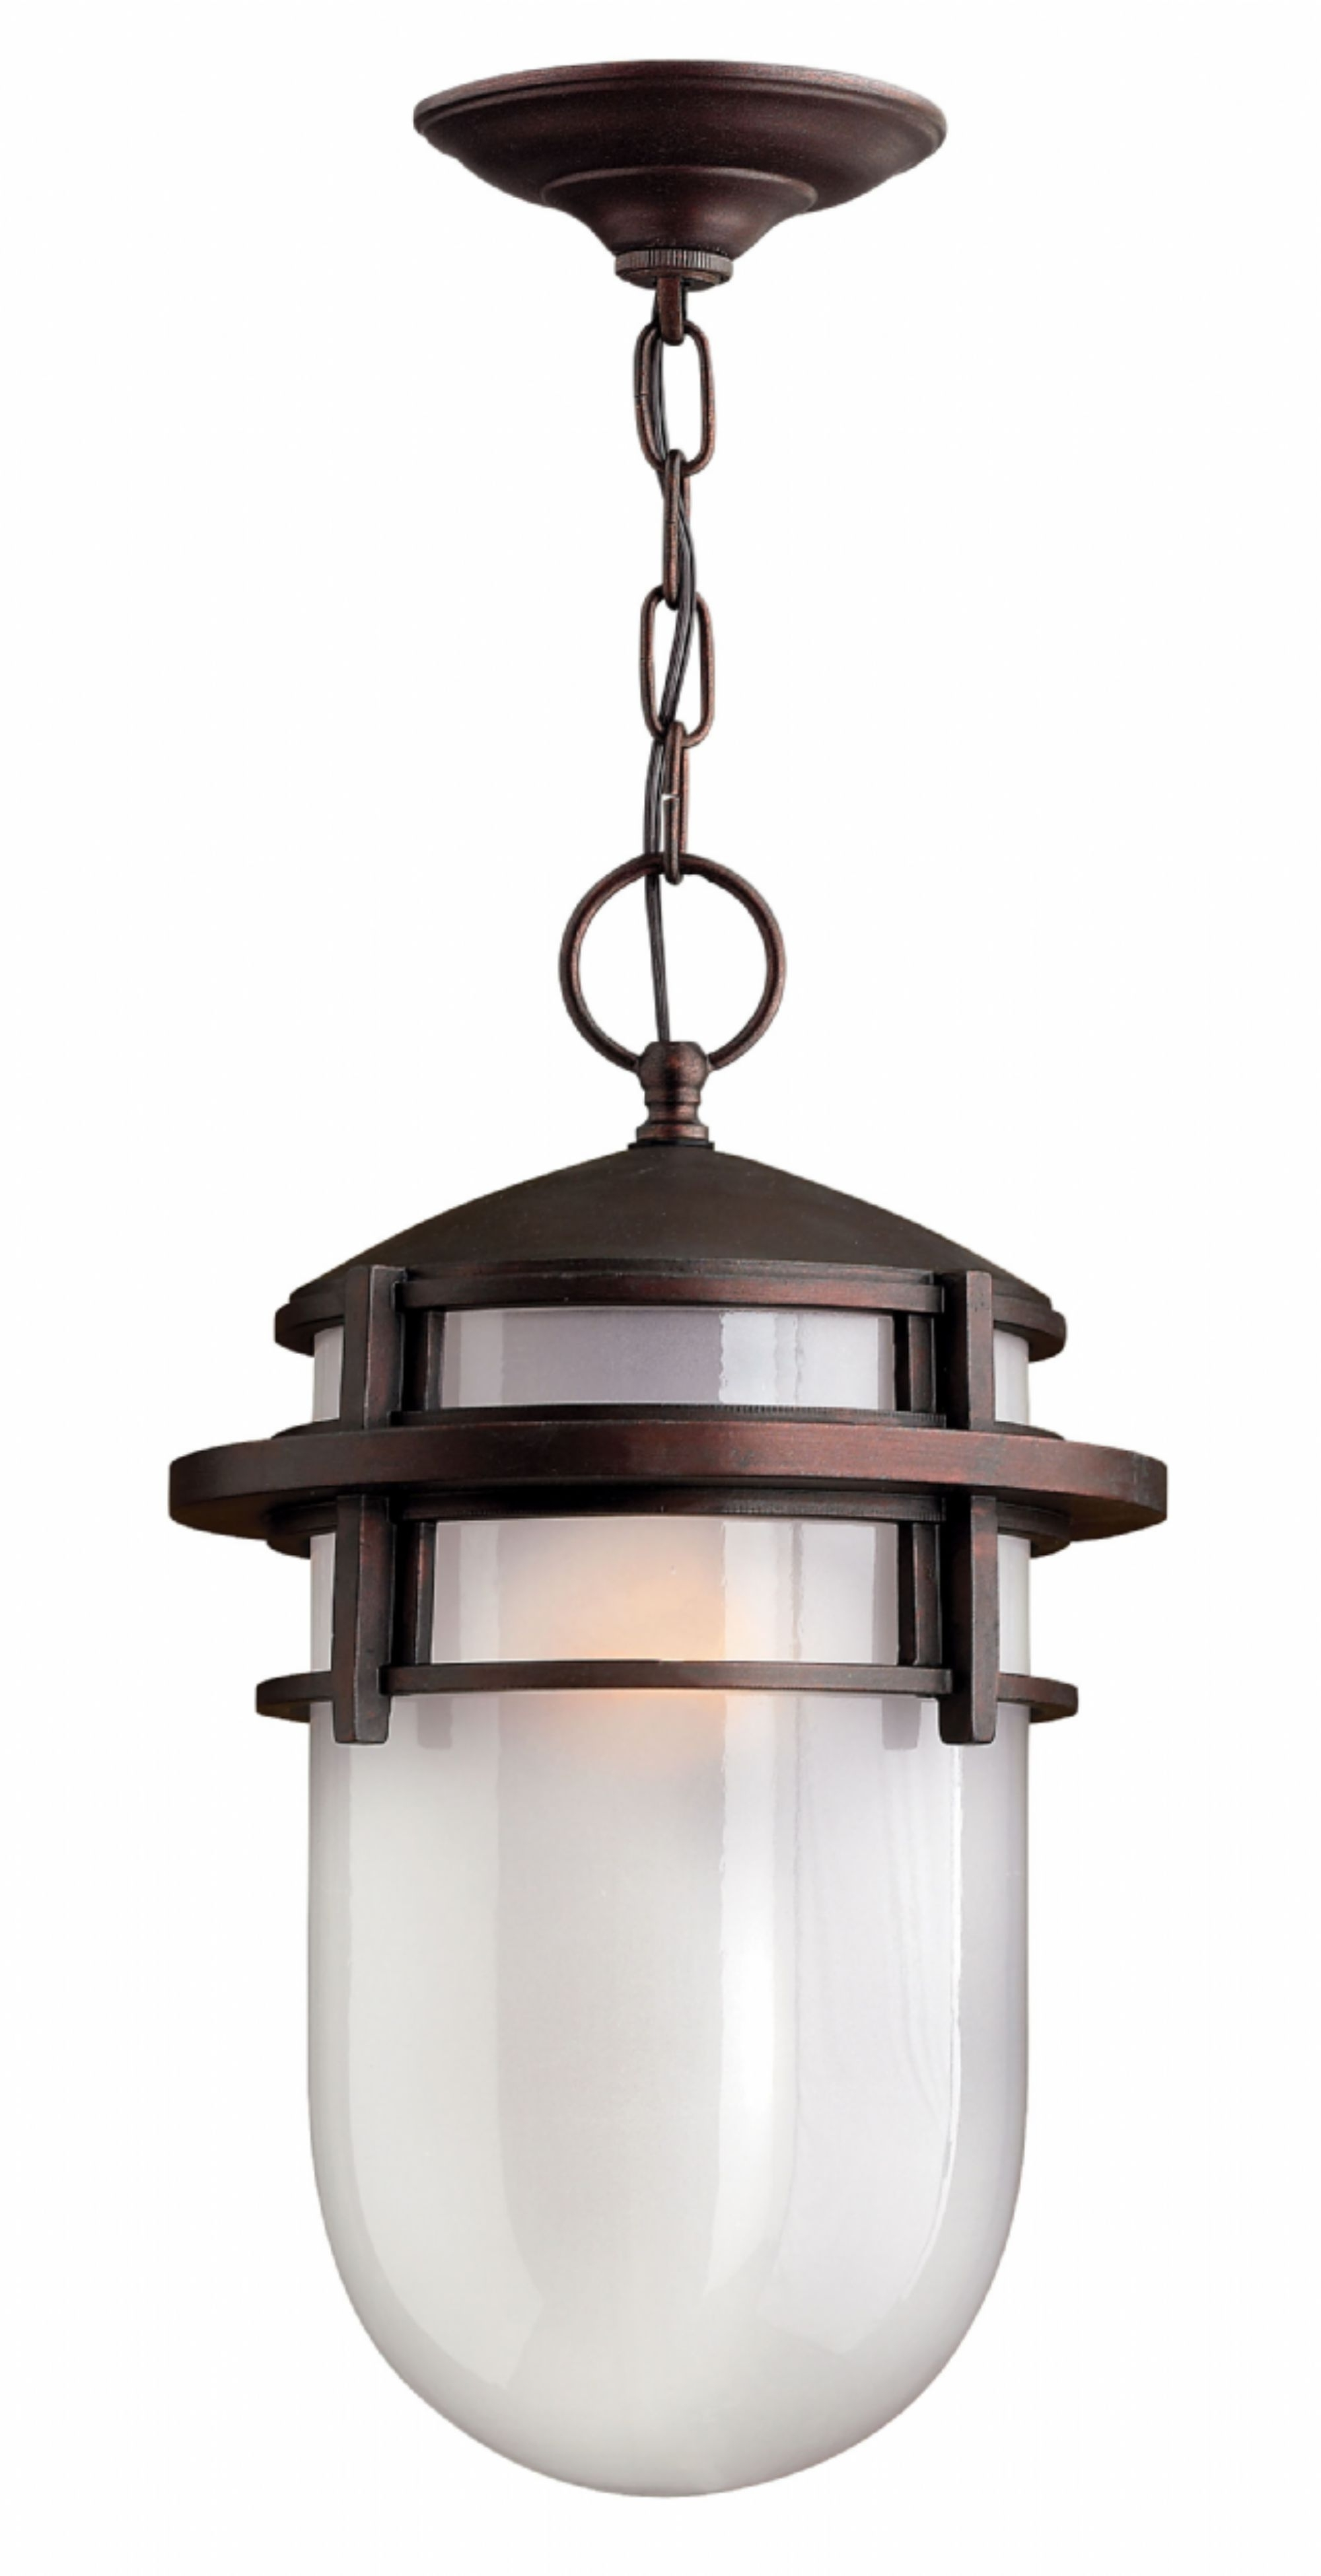 Hinkley Outdoor Hanging Lights With Best And Newest Victorian Bronze Reef > Exterior Ceiling Mount (View 8 of 20)